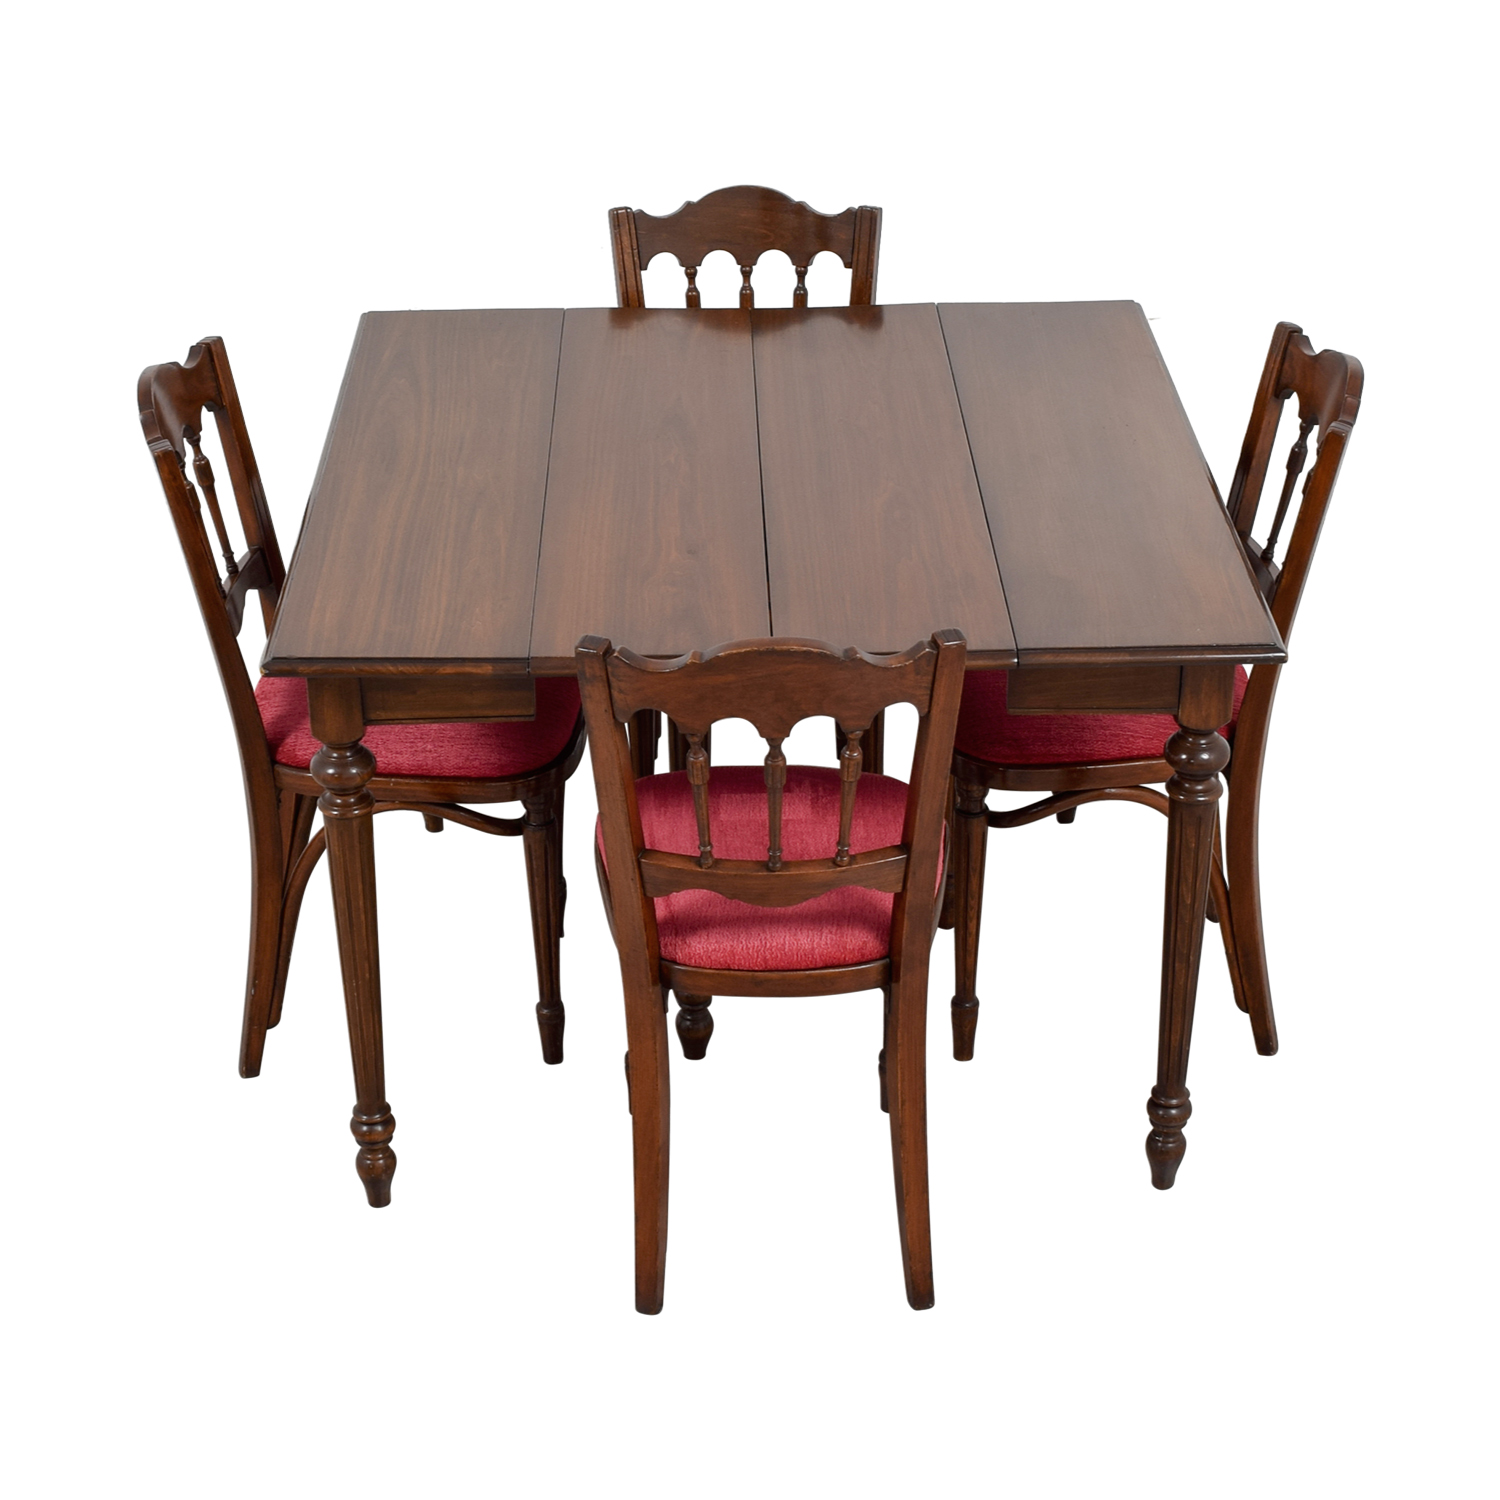 Vinatage mahogany dining table set price